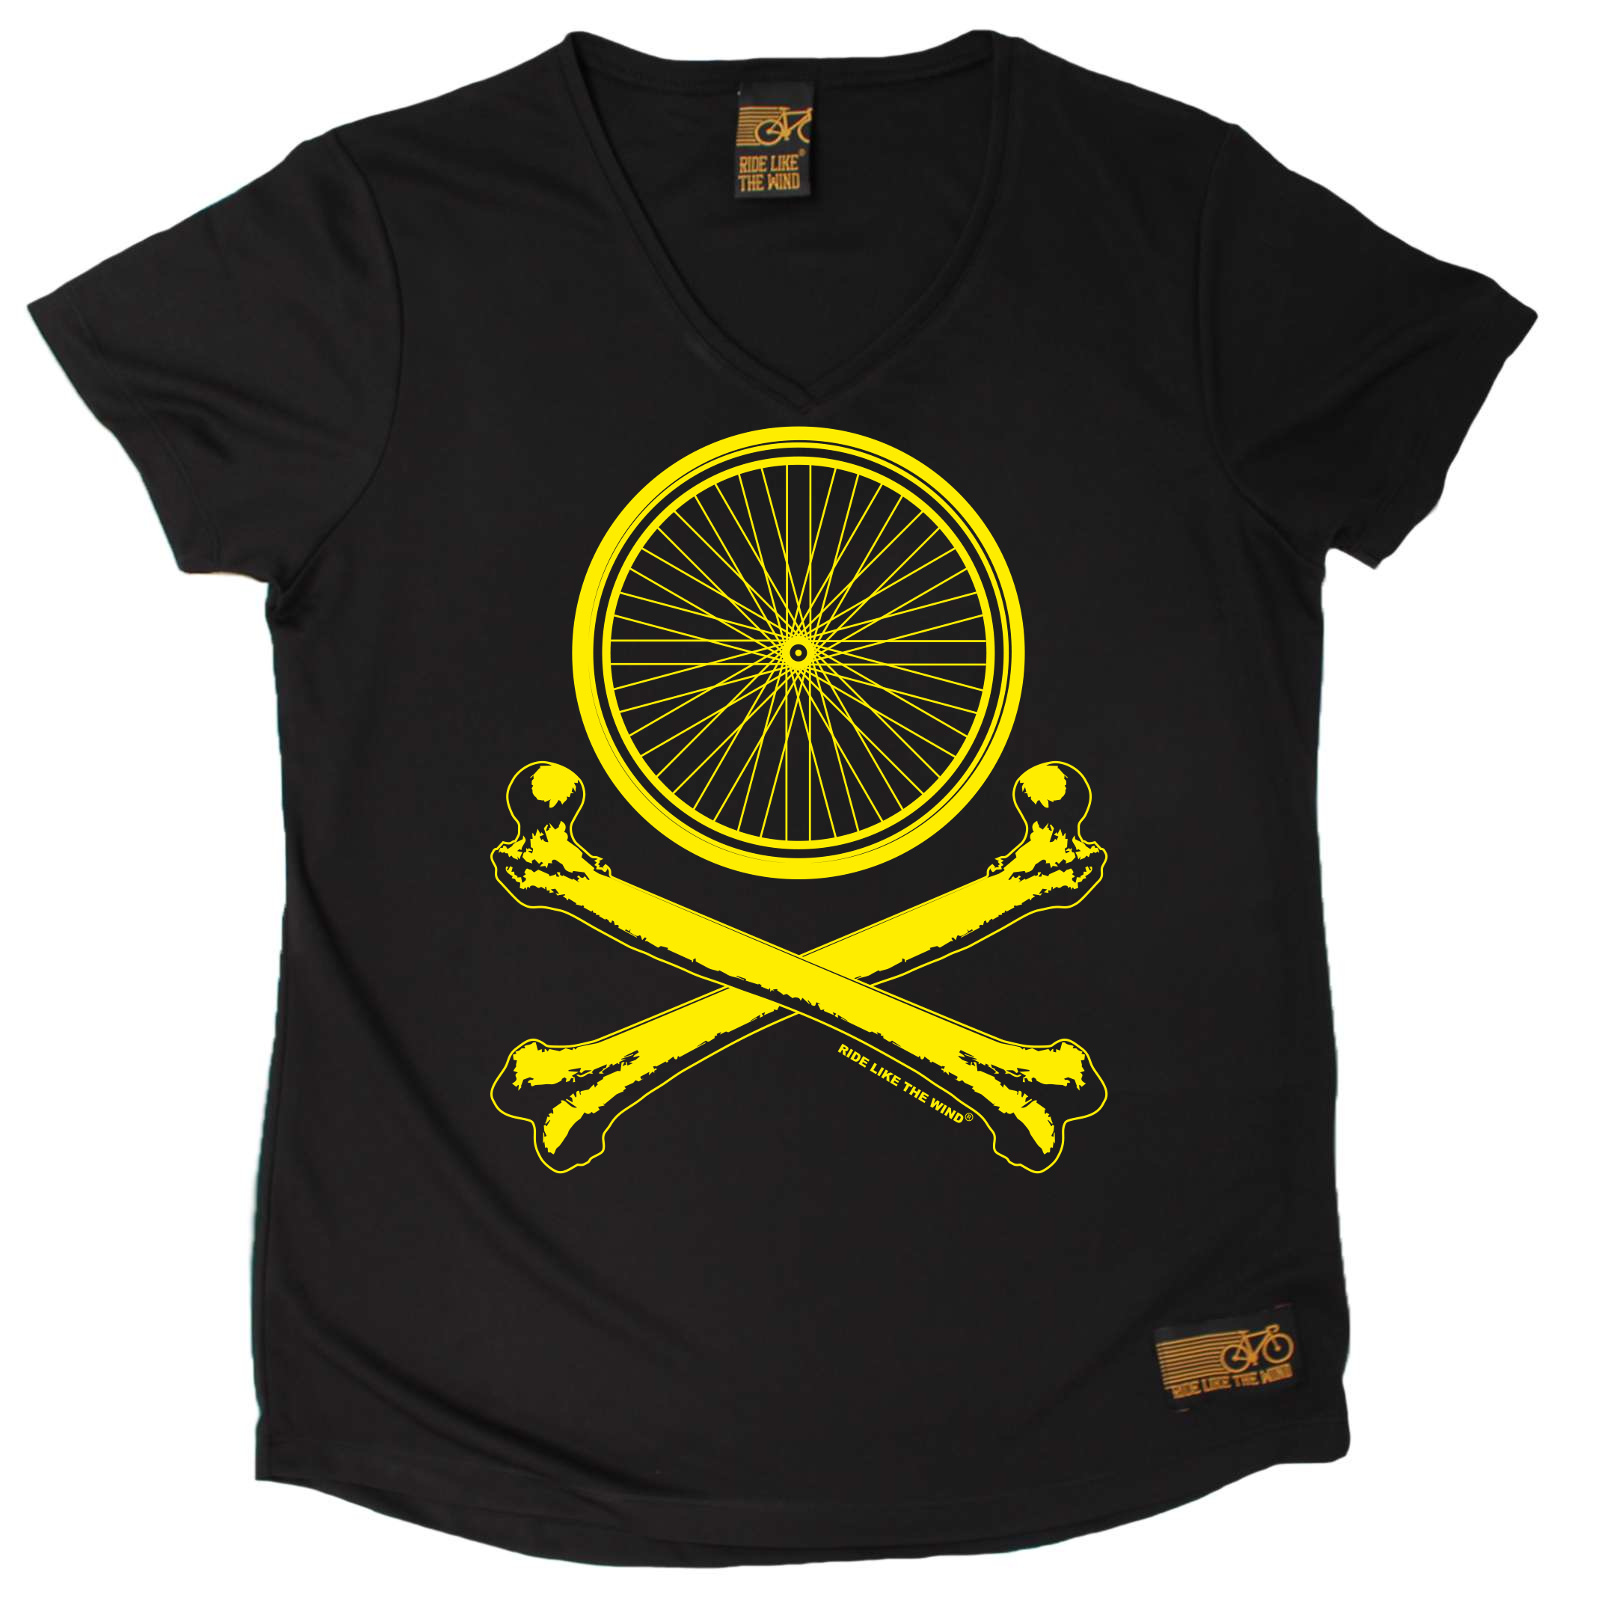 Ladies-Cycling-Wheel-Crossbones-Breathable-atee-T-SHIRT-DRY-FIT-V-NECK-T-SHIRT